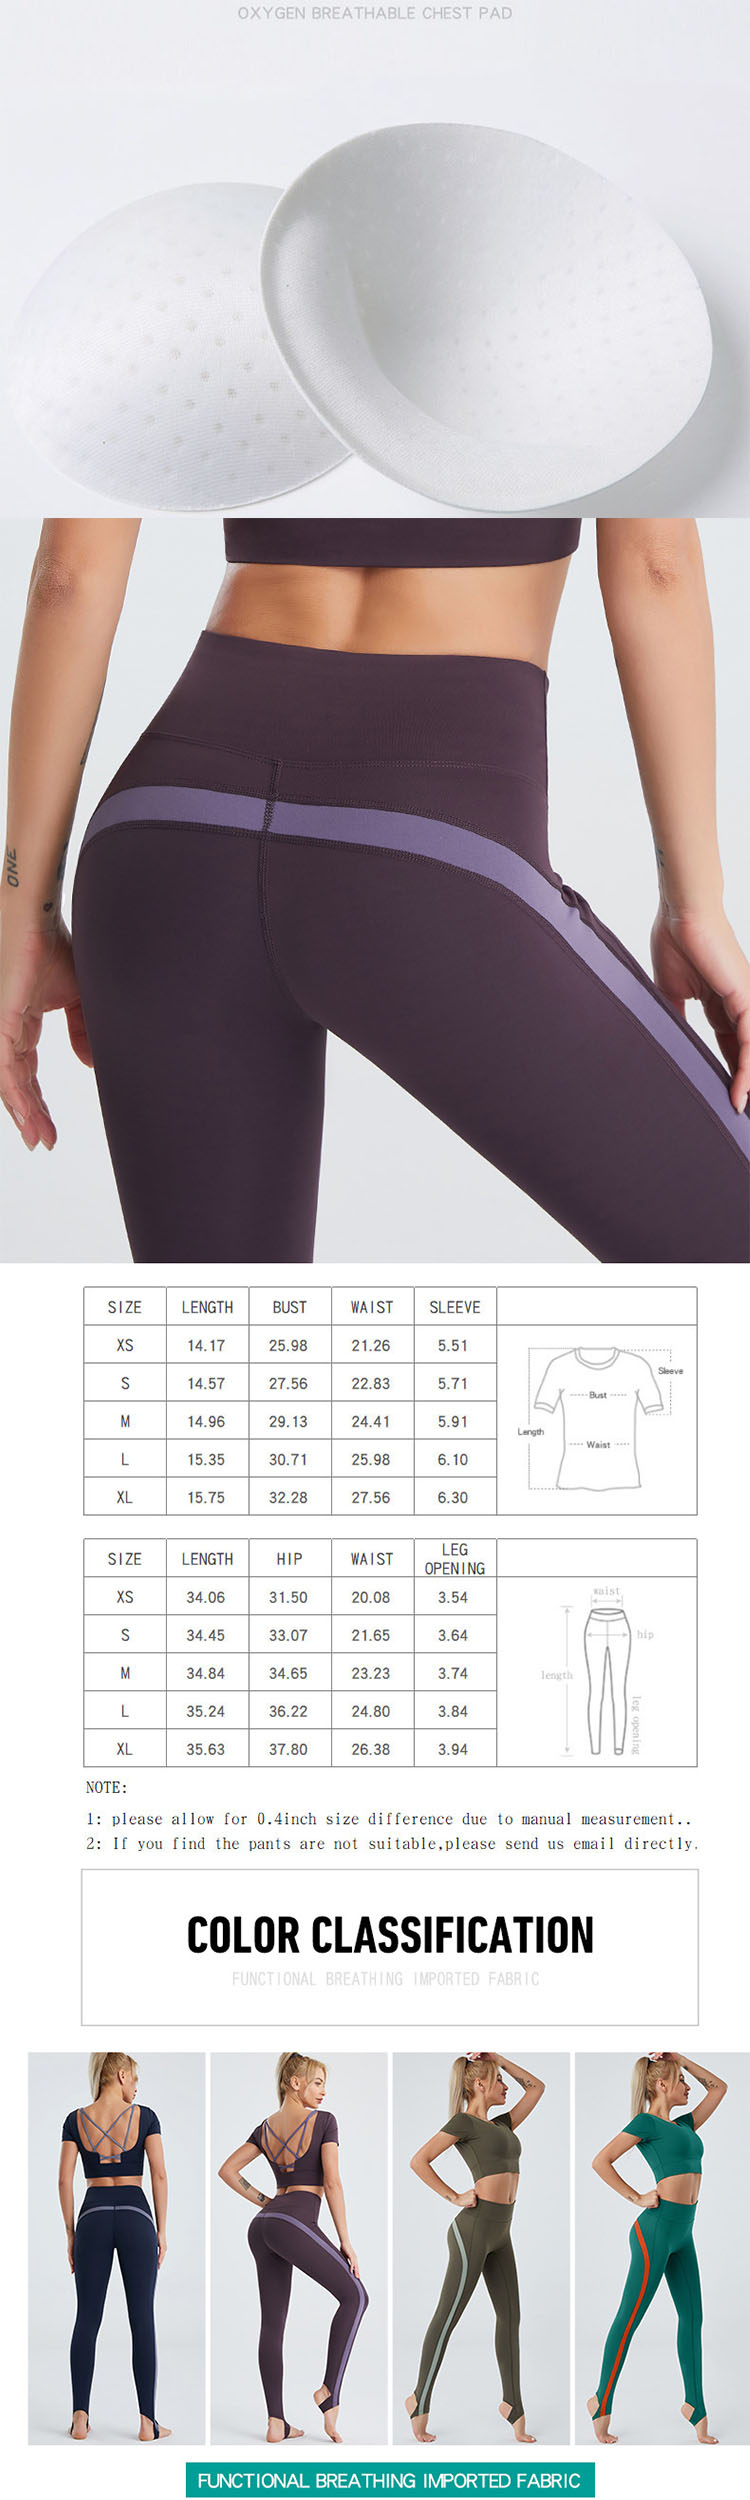 Three-dimensional tailoring to modify the figure. Skin-friendly and breathable, exercise is not sultry.